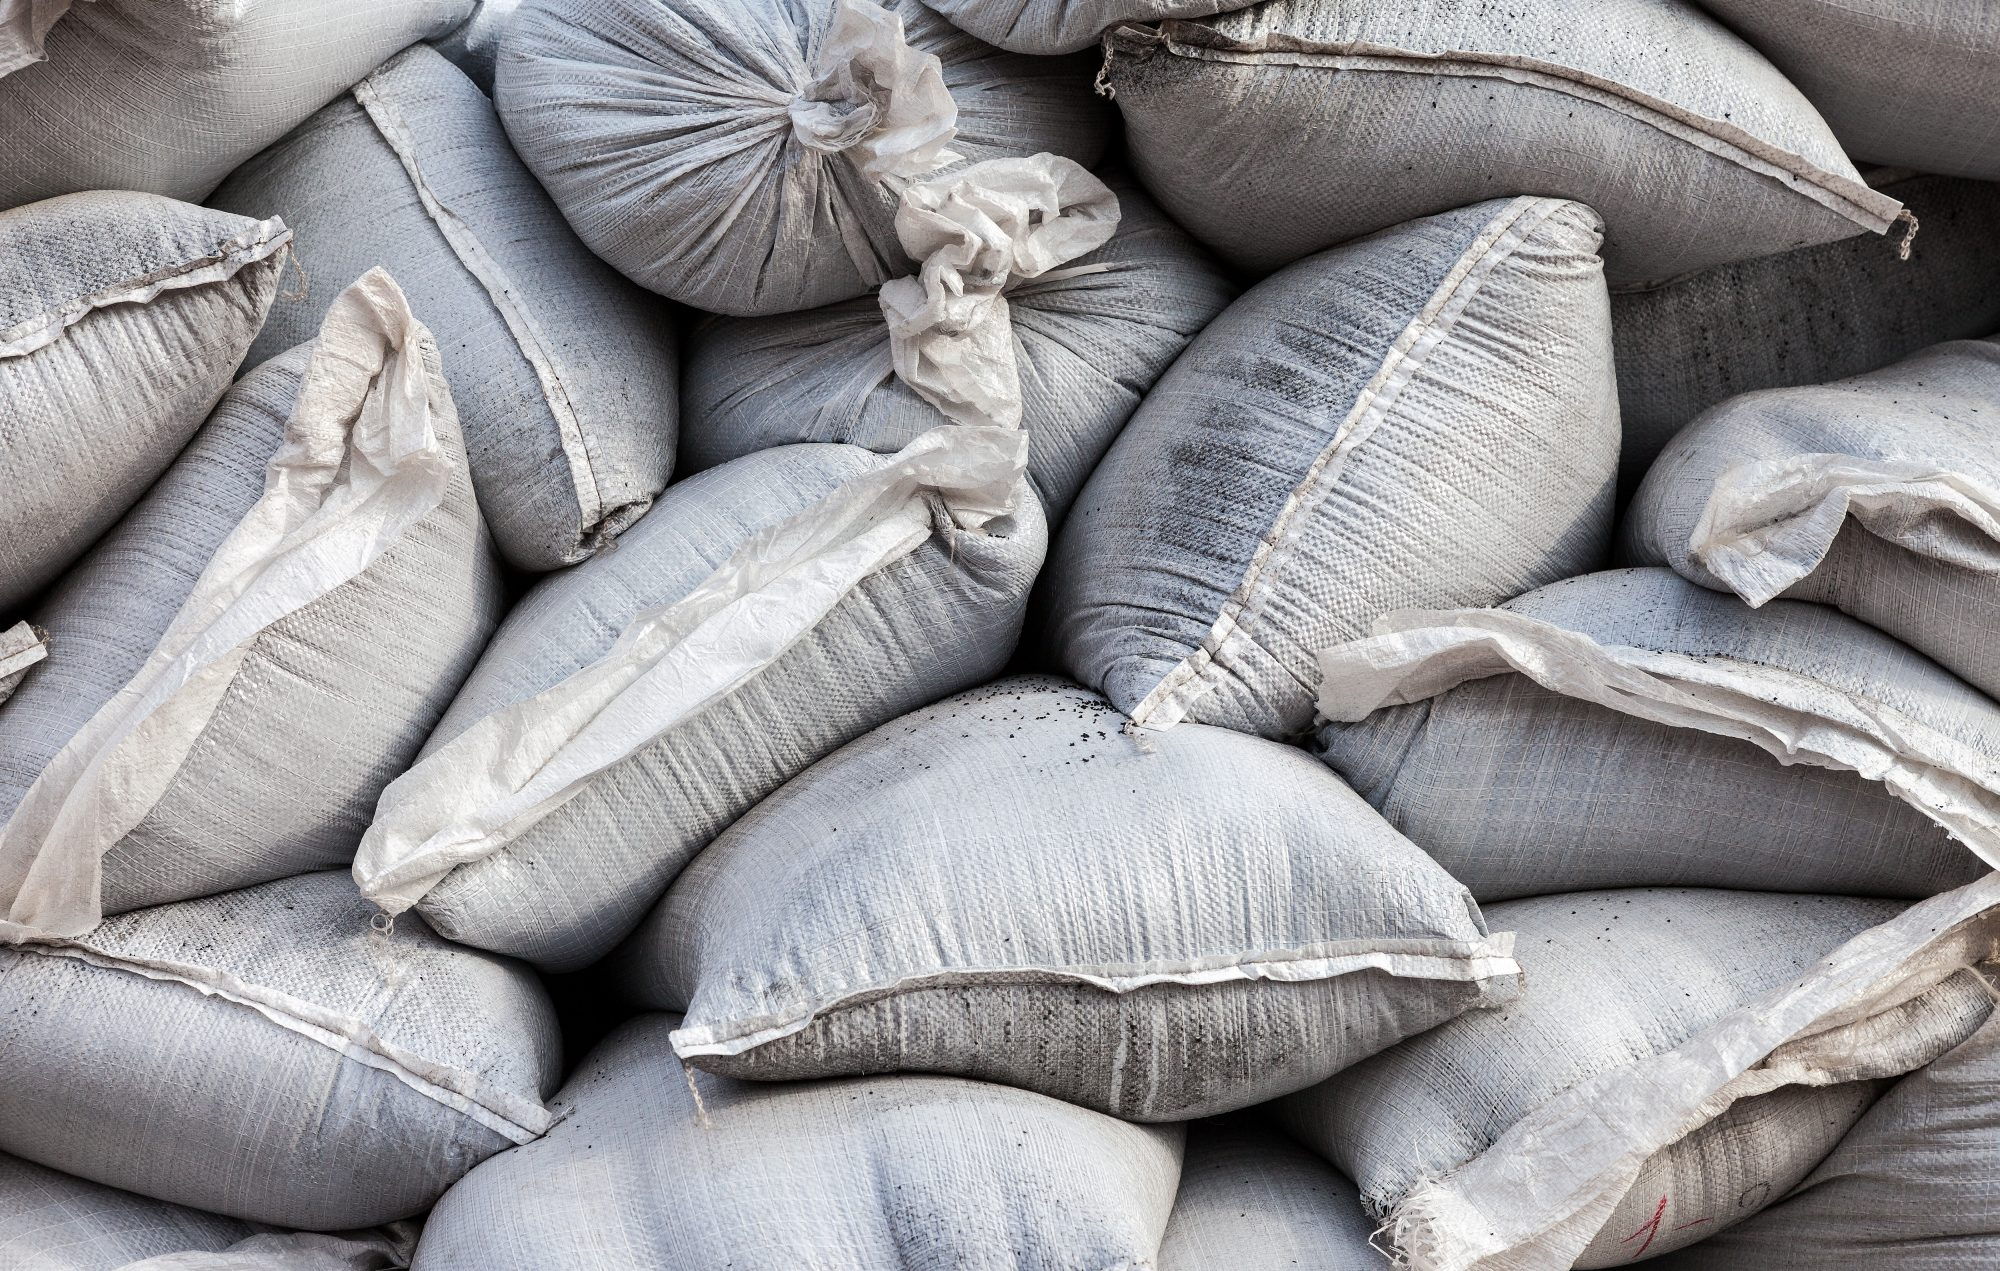 sandbags for disaster relief